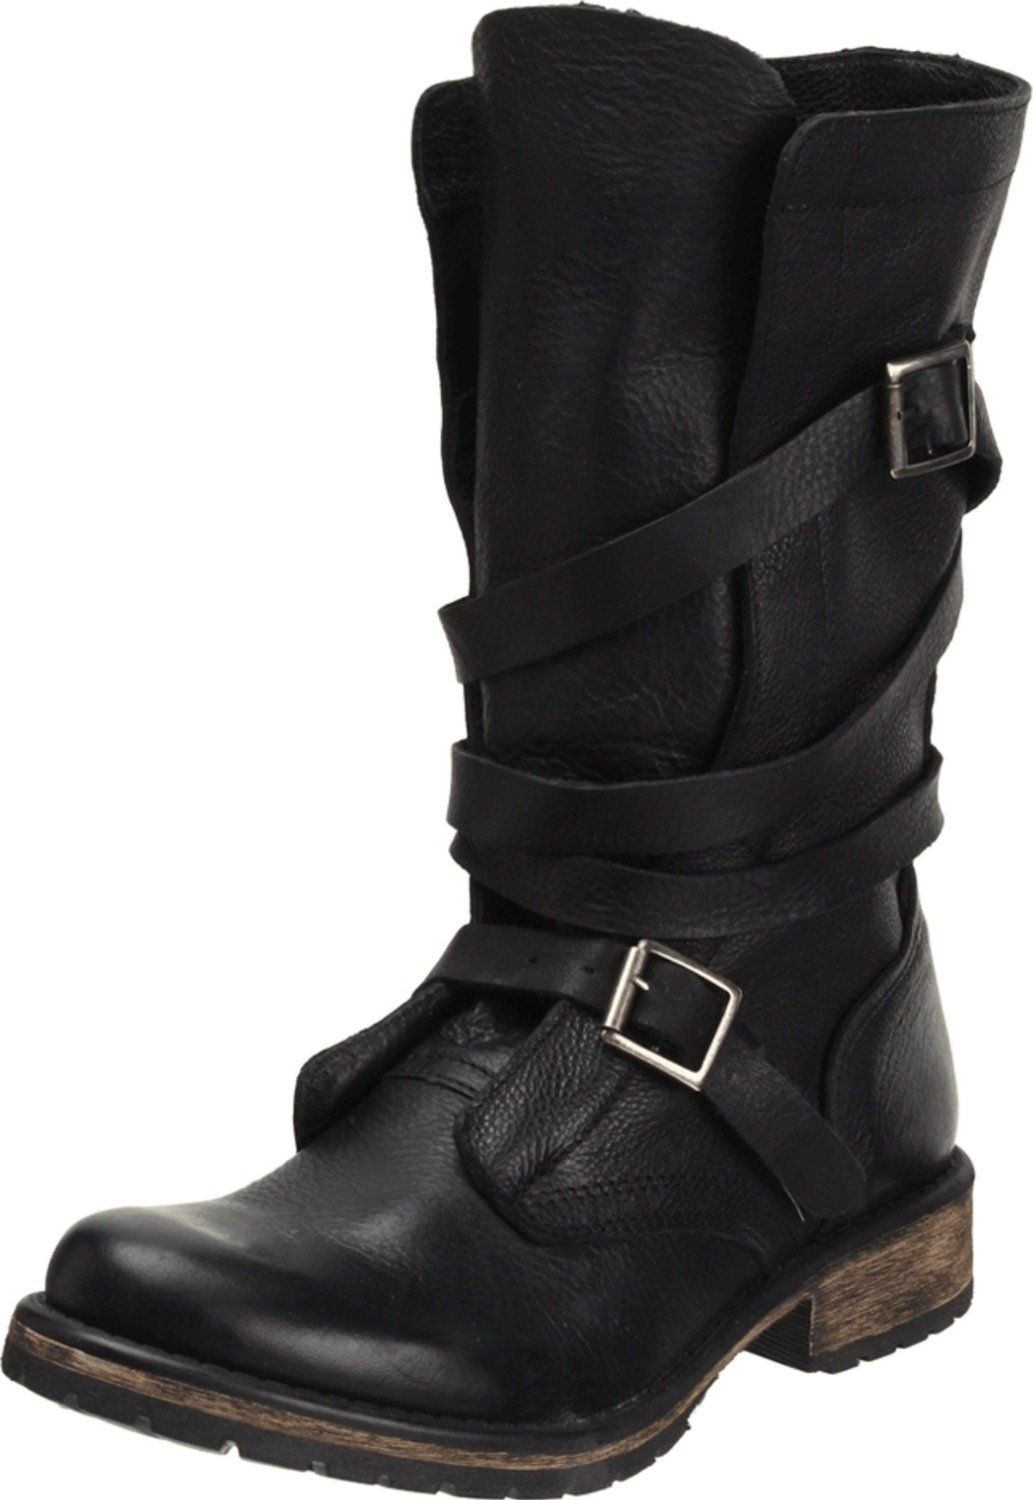 Steve Madden Women's Banddit Boot - designer shoes, handbags ...